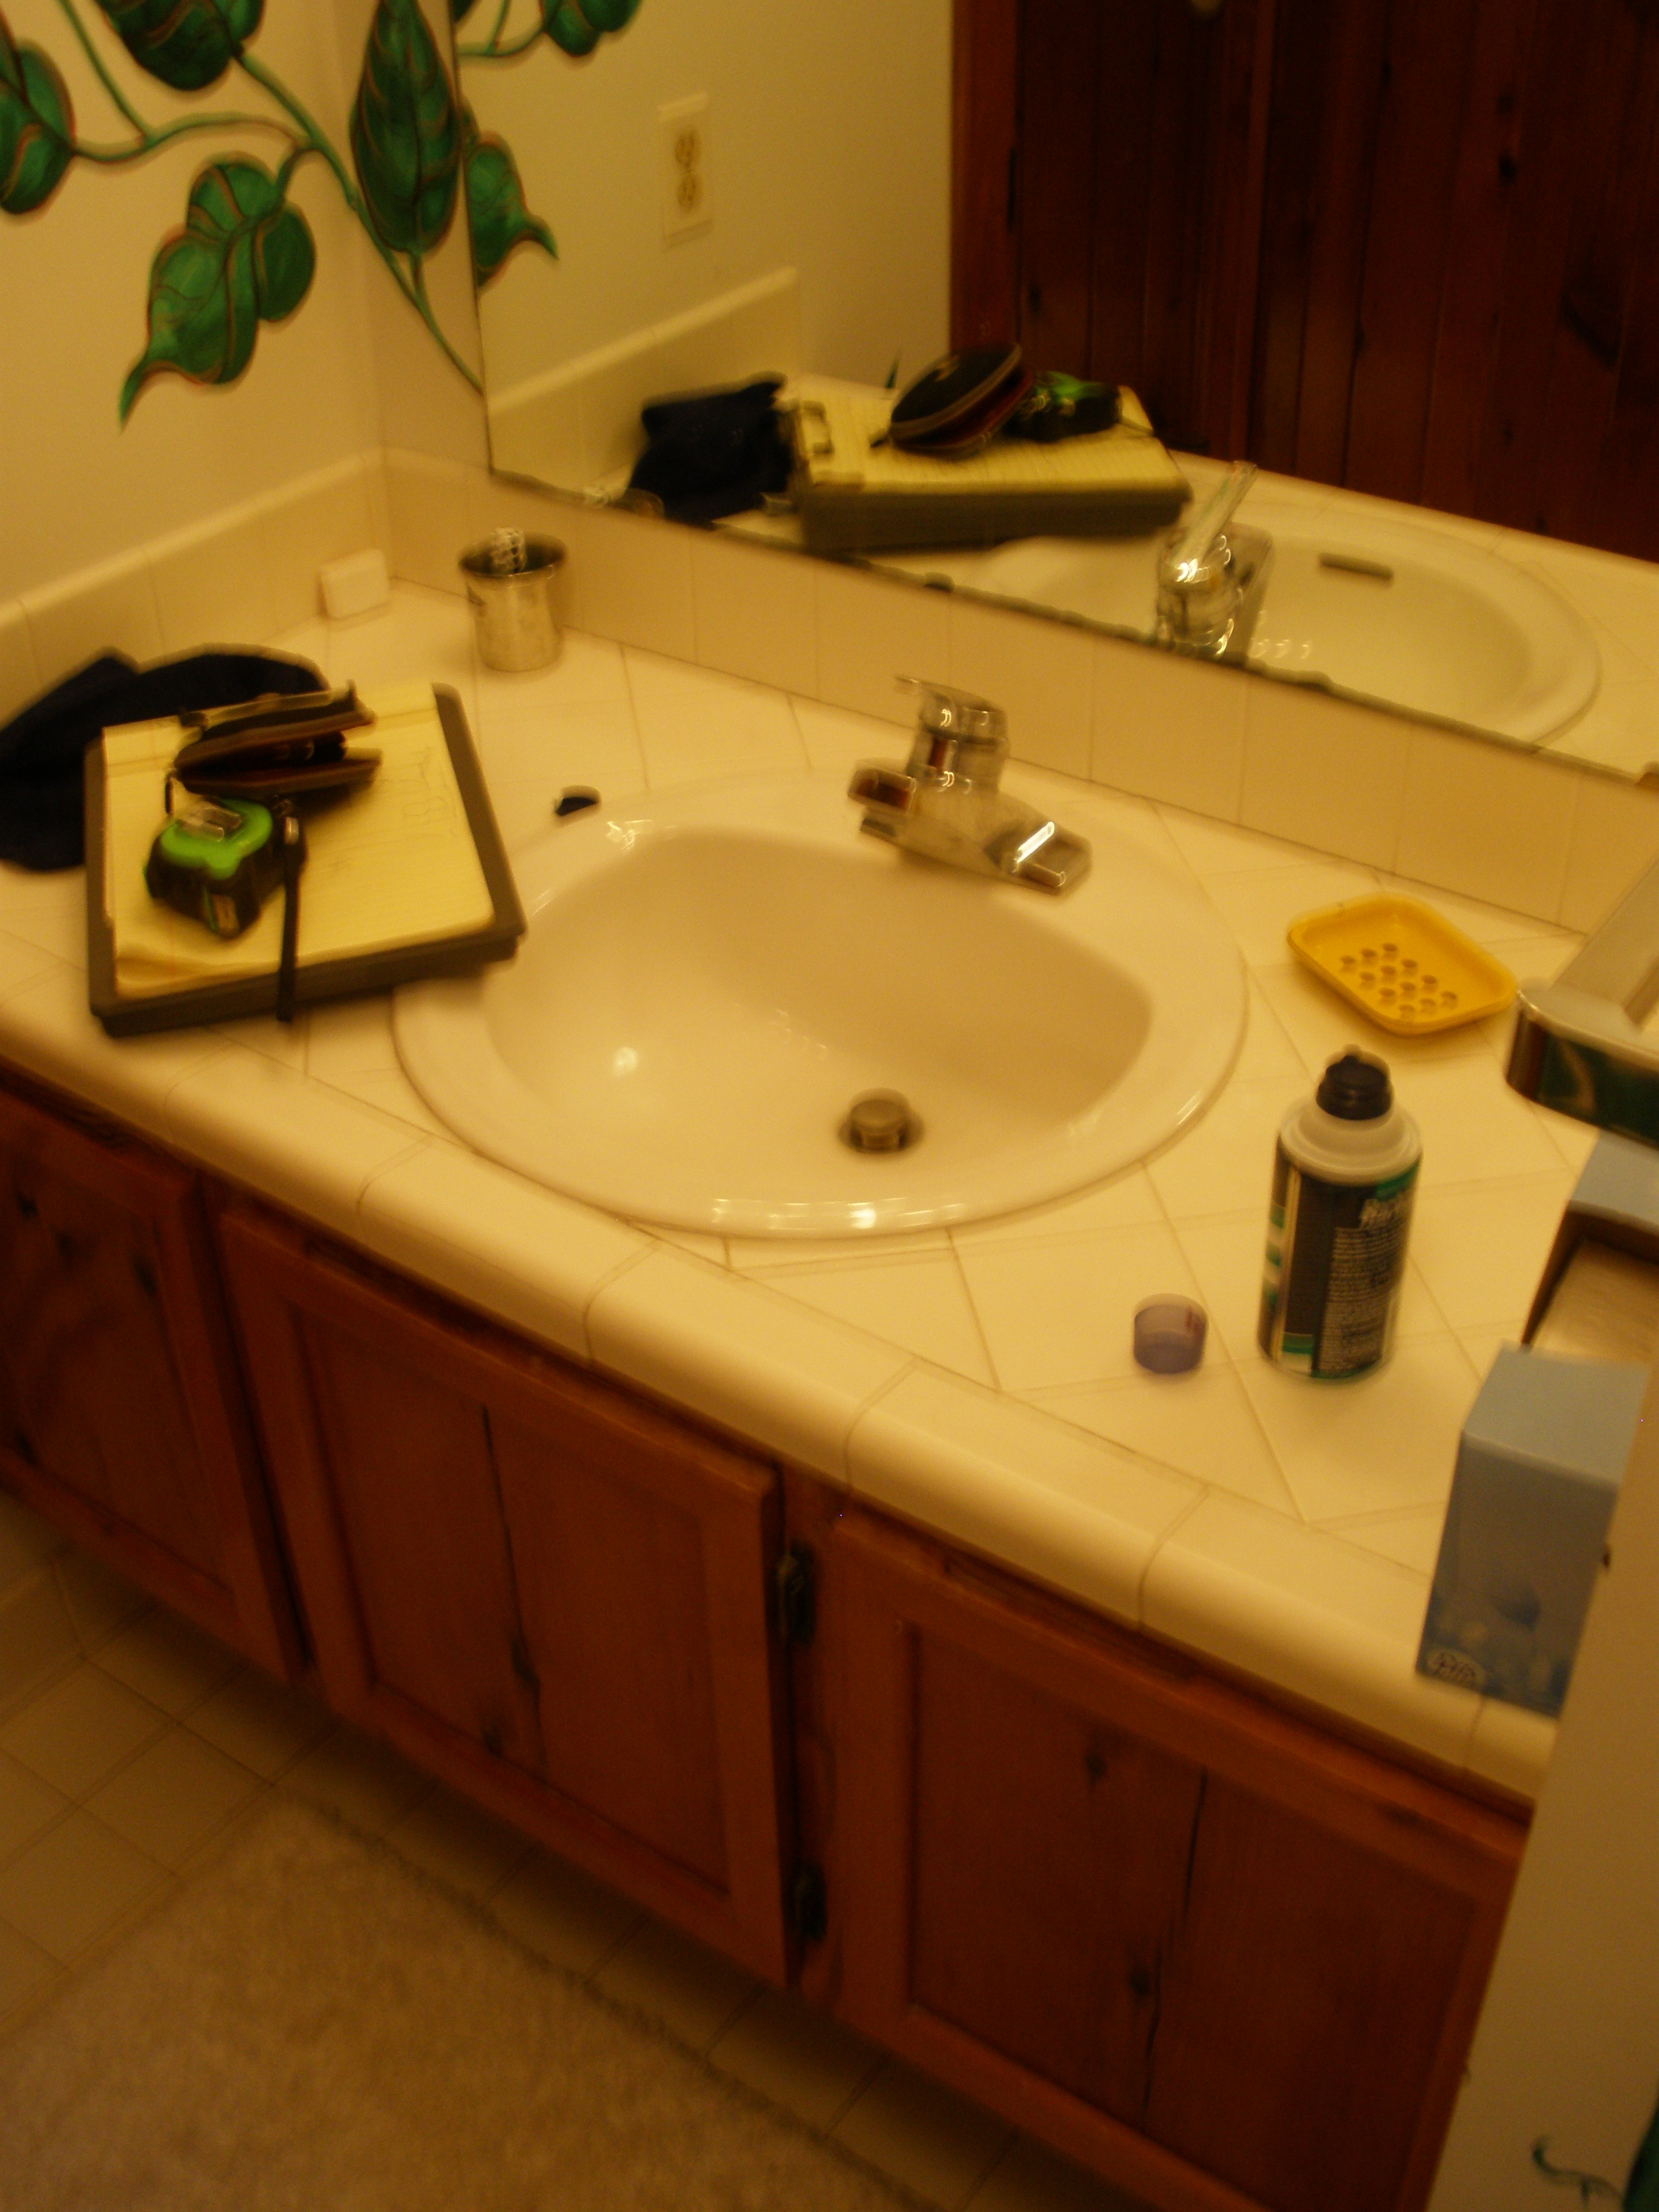 remodeling allor royal remodel repair construction oak bathroom